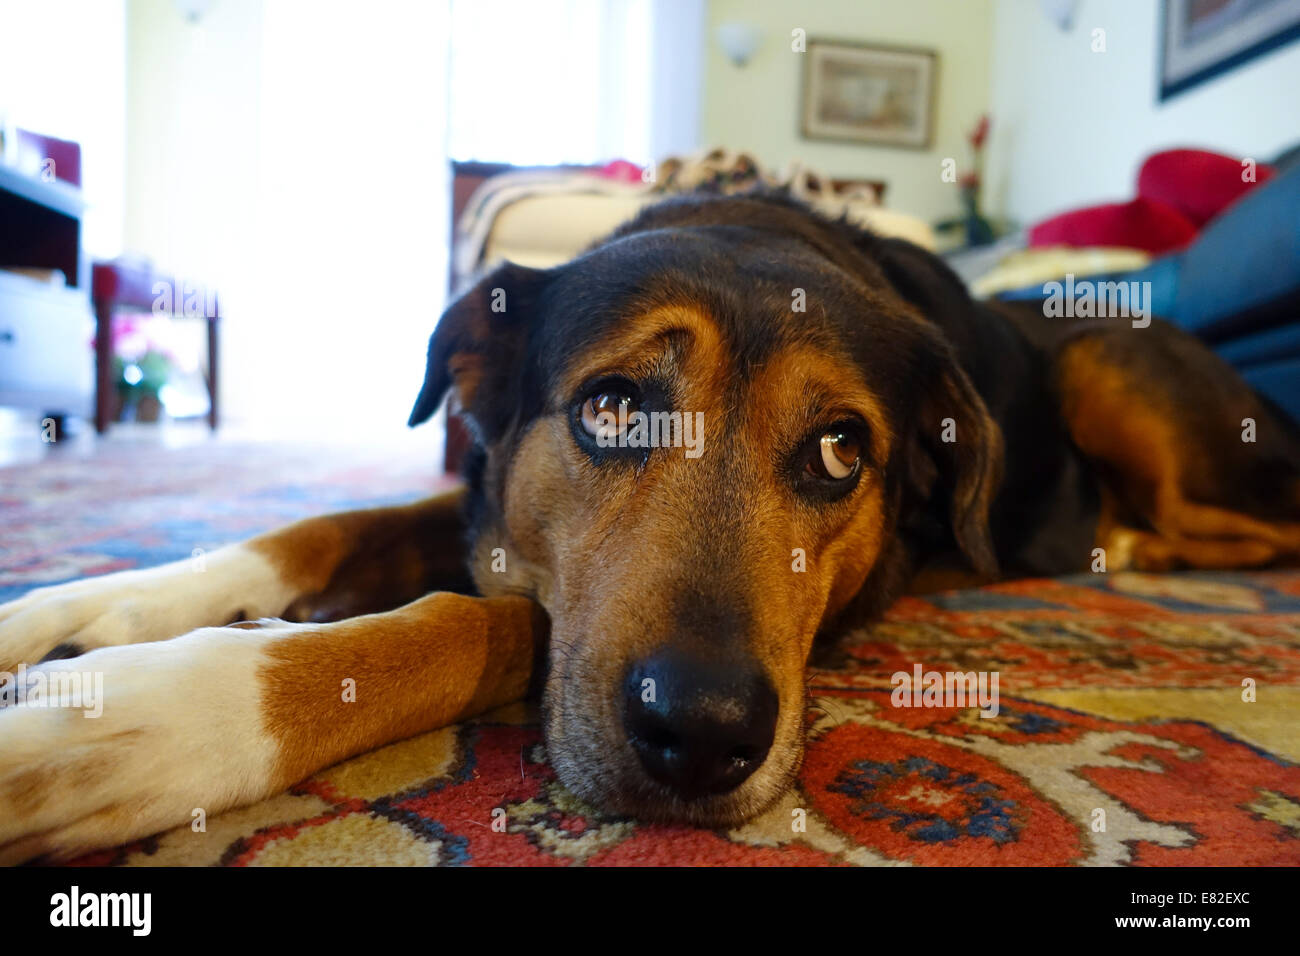 sad-dog-laying-on-the-floor-in-a-home-with-expressive-eyes-E82EXC.jpg